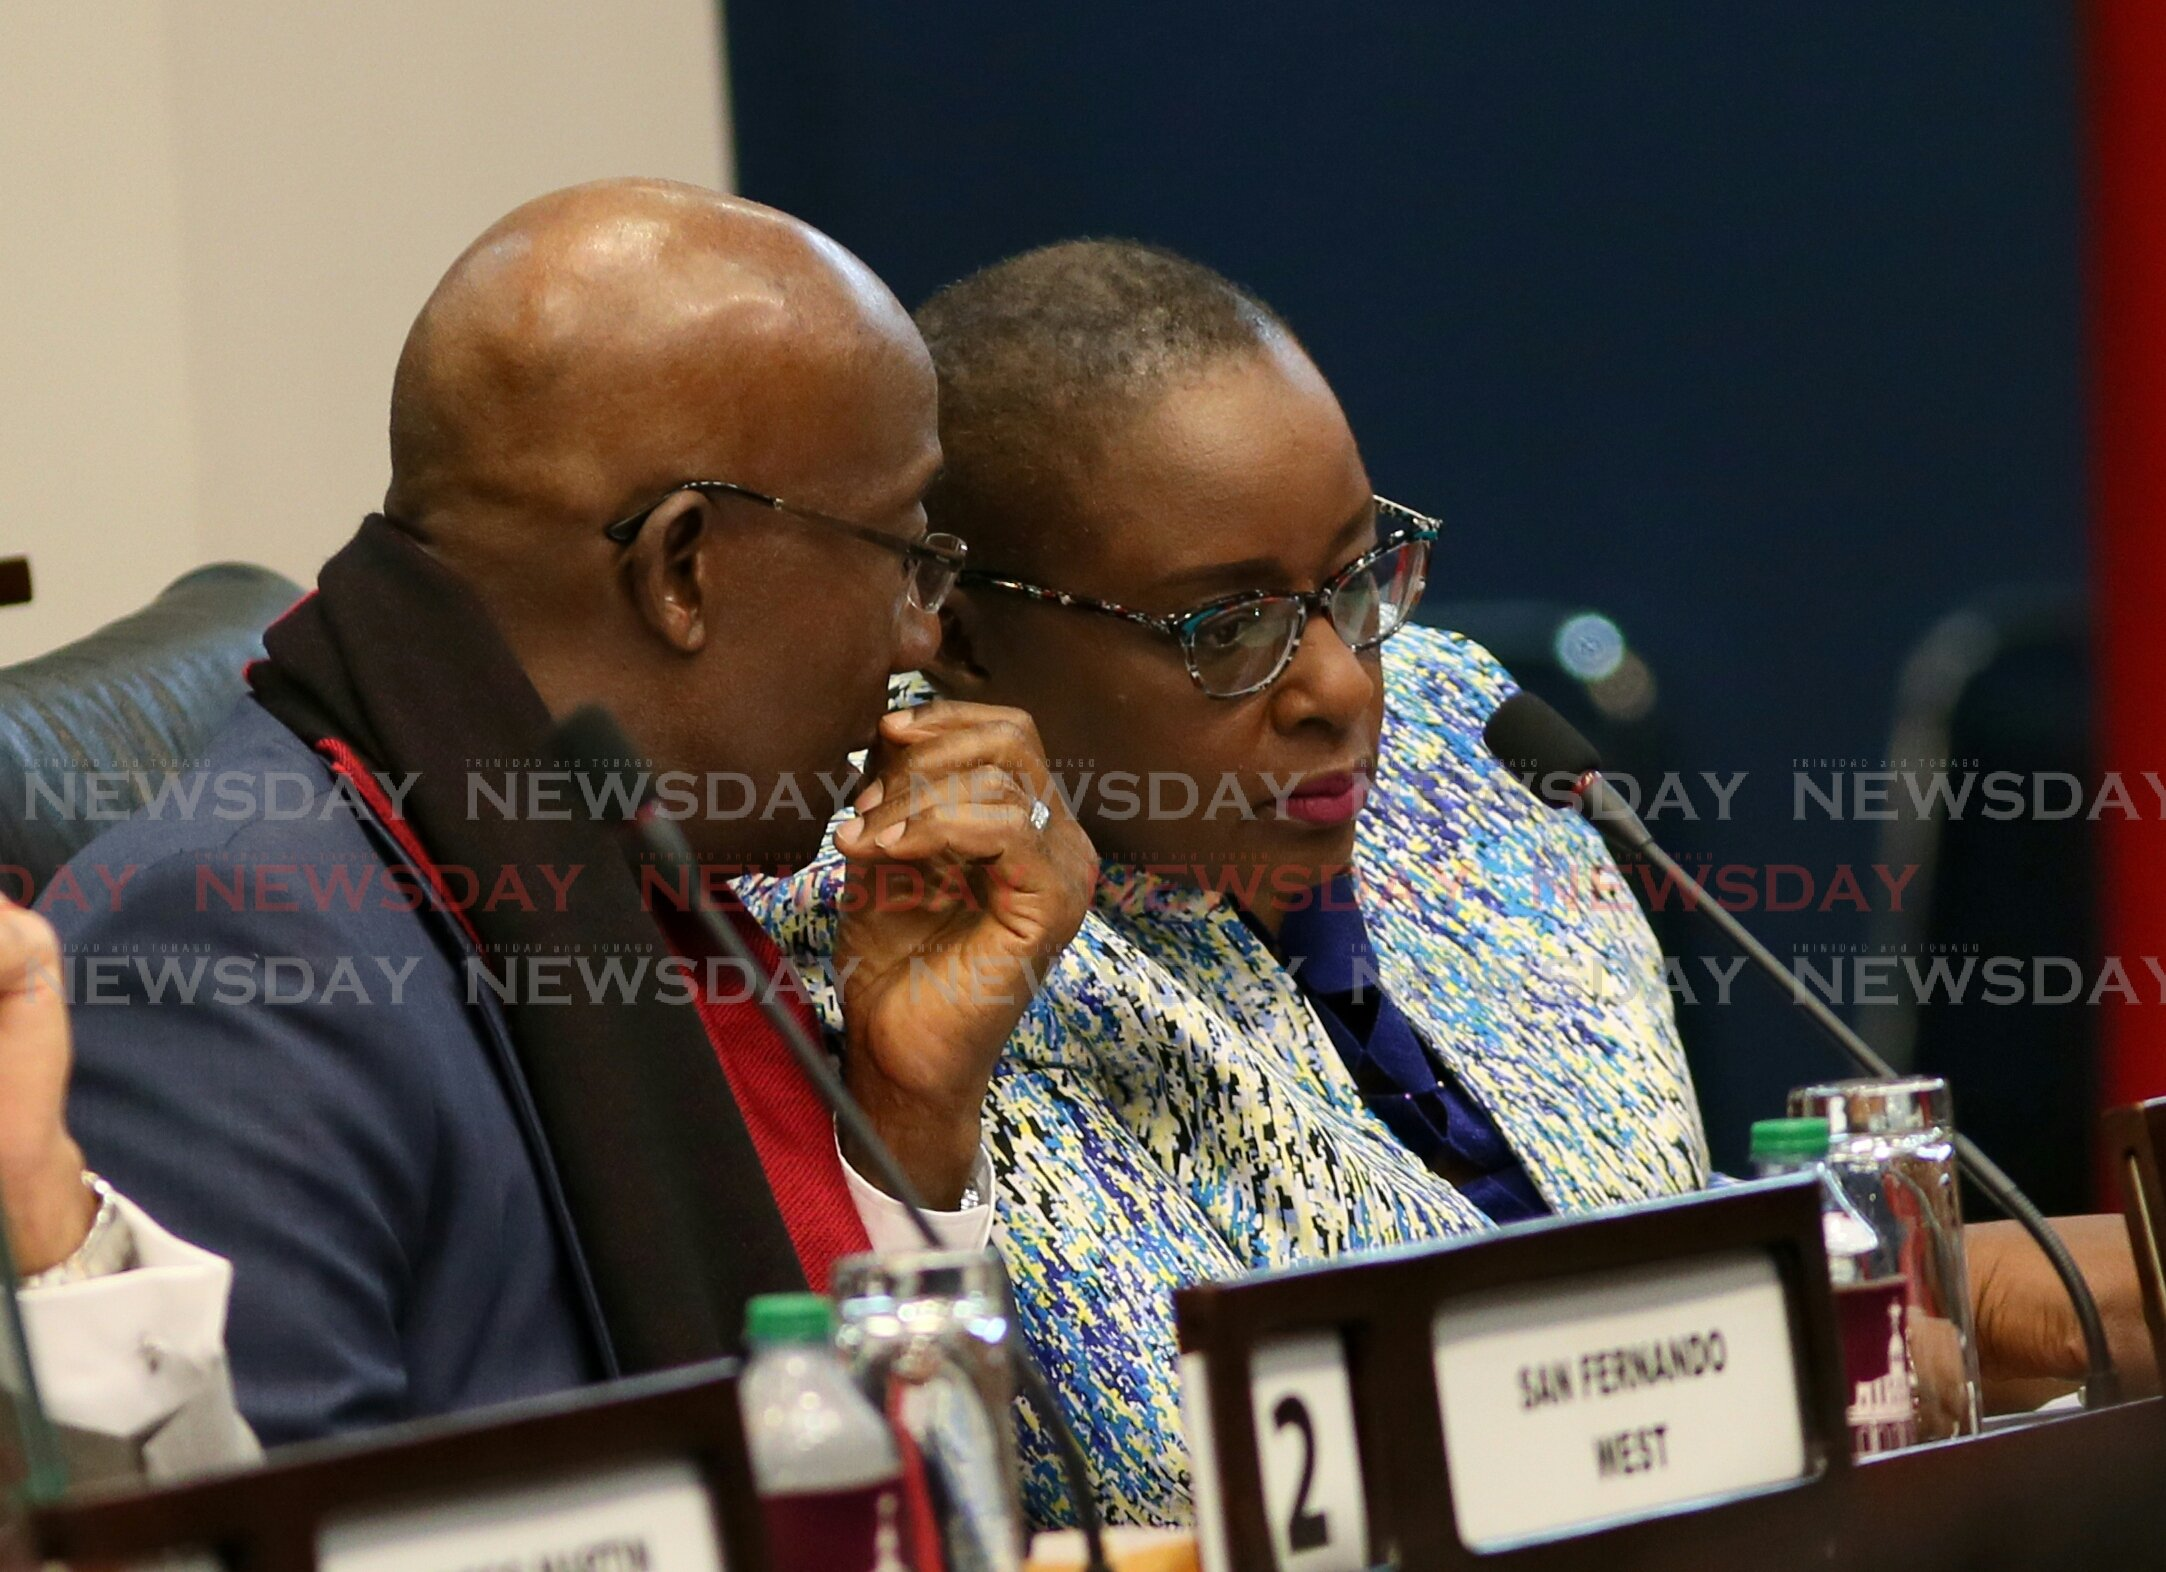 Prime Minster Dr Keith Rowley speaks to Planning Minister Camille Robinson-Regis in Parliament during the 2019 budget presentation. Photo by Azlan Mohammed.